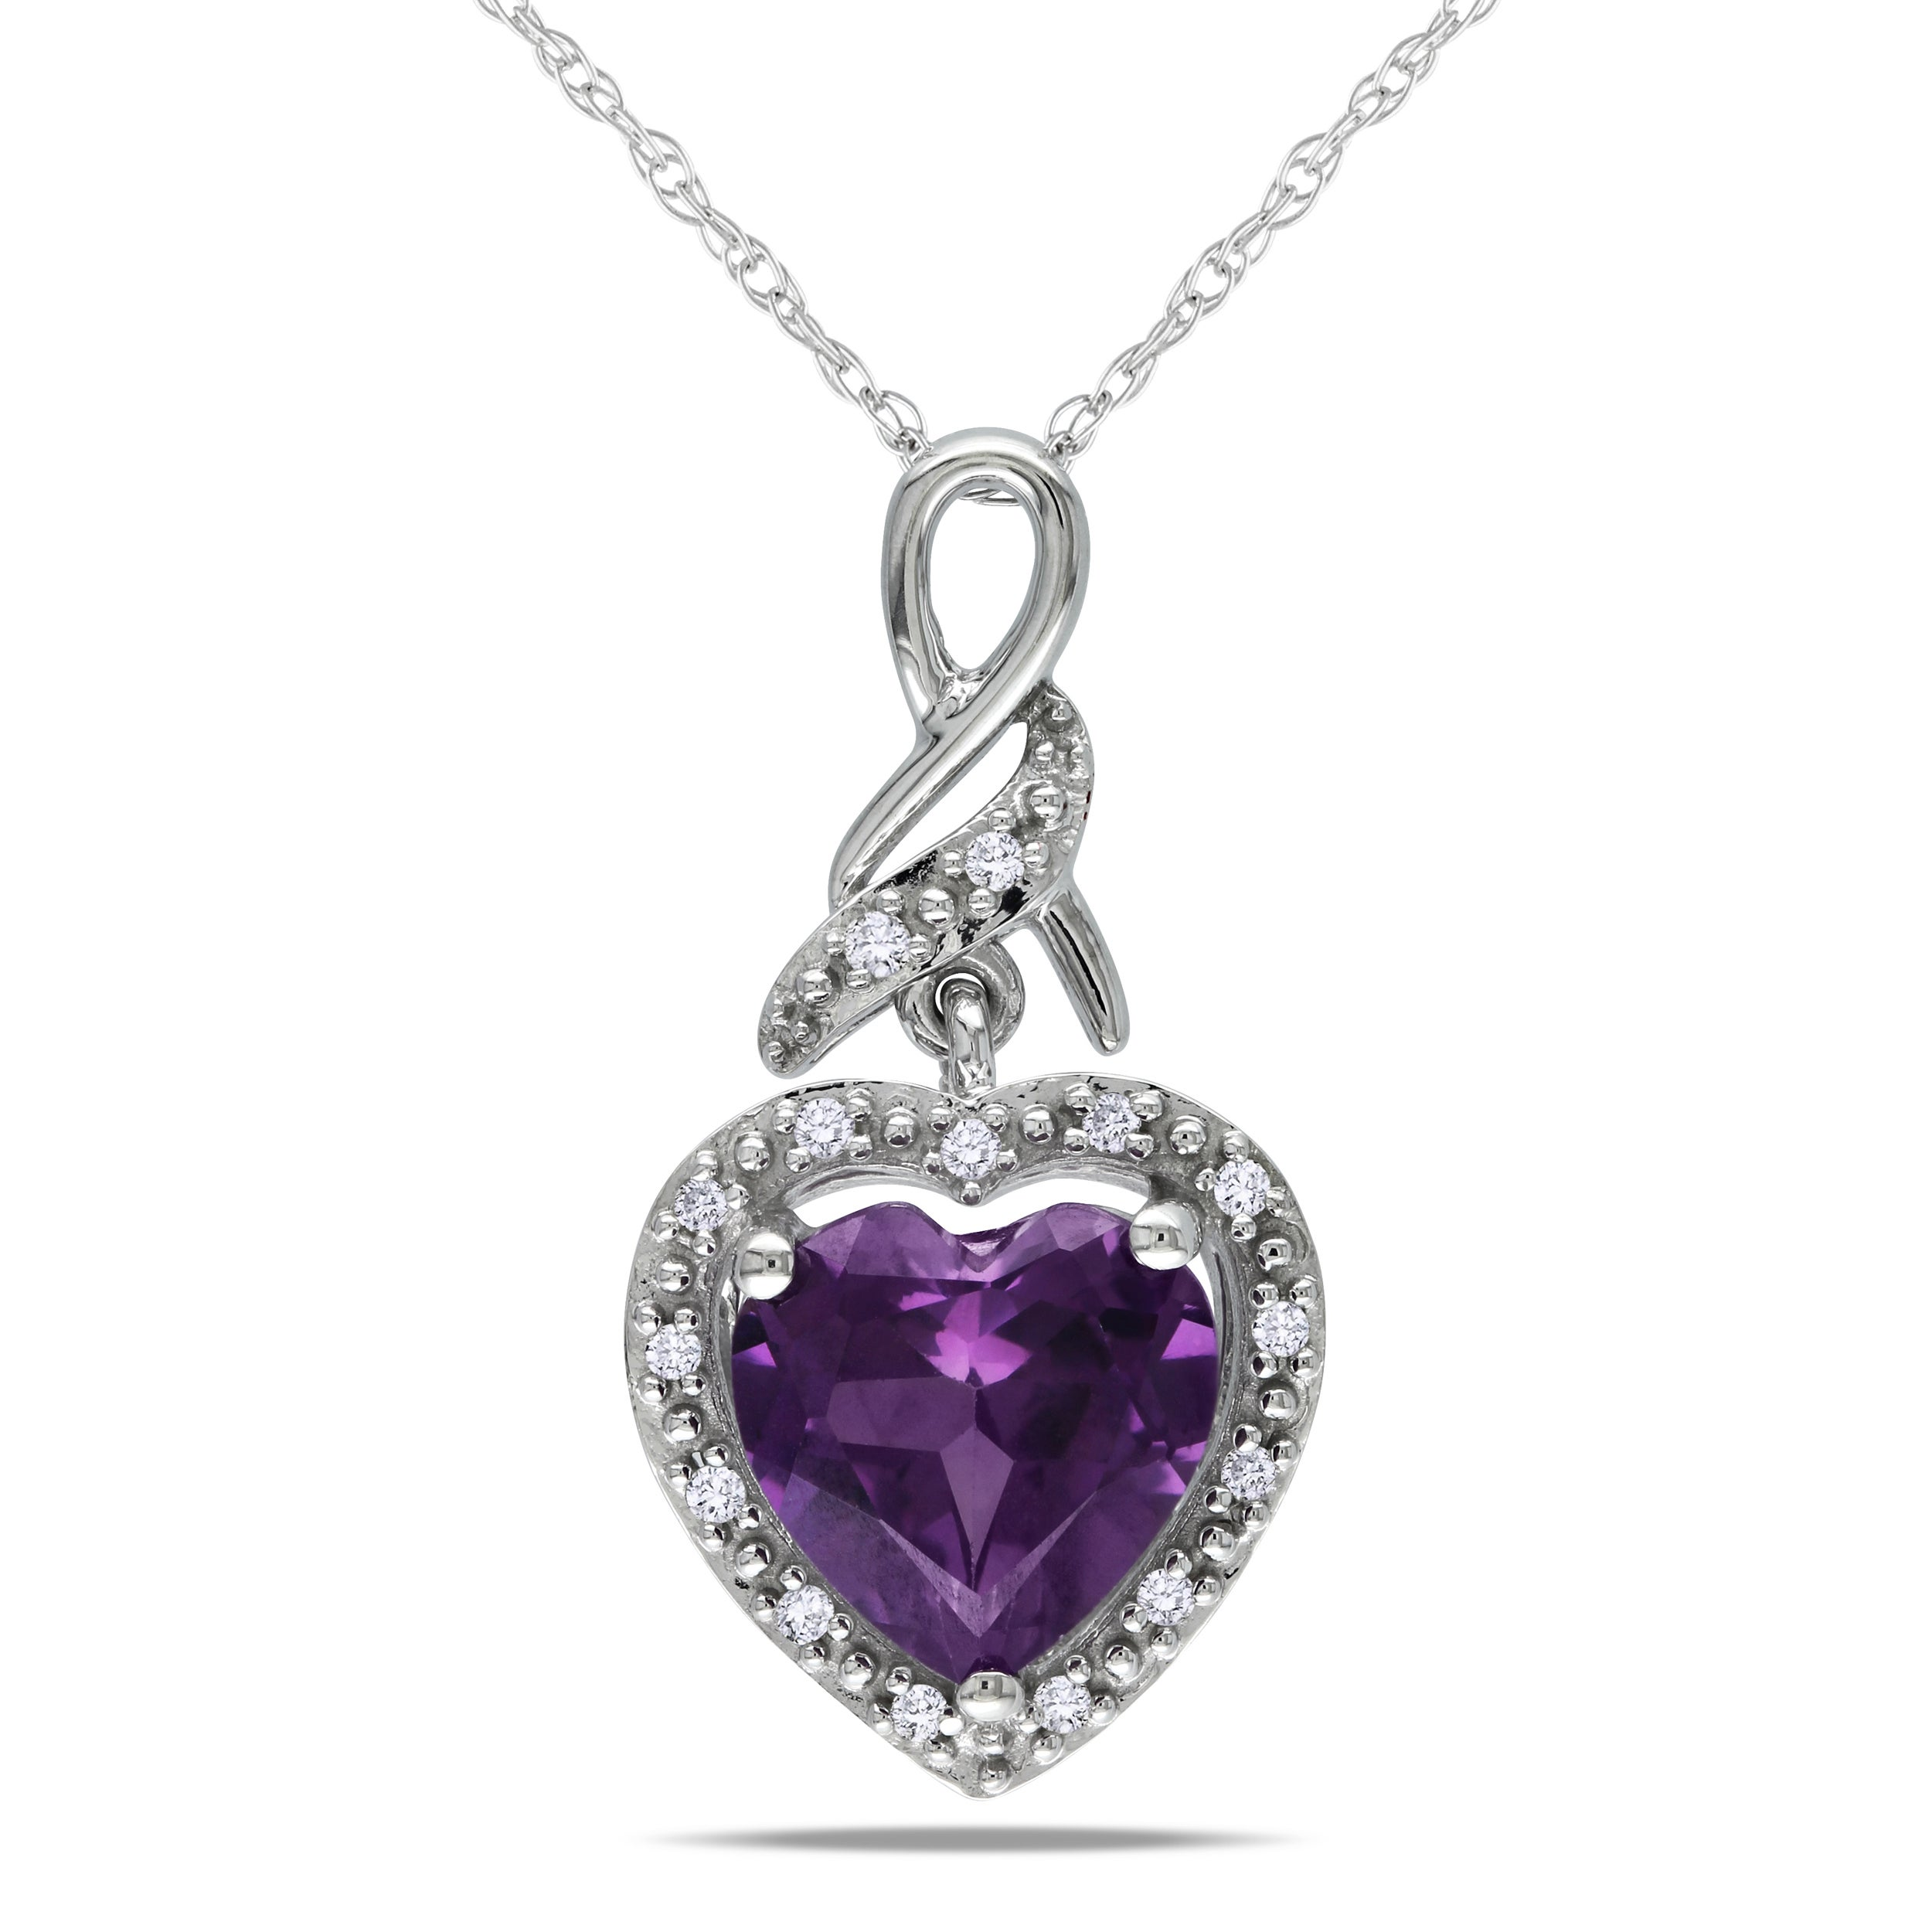 avery p silver birthstone heart dillards necklace james sterling charm with zi purple alexandrite june keepsake